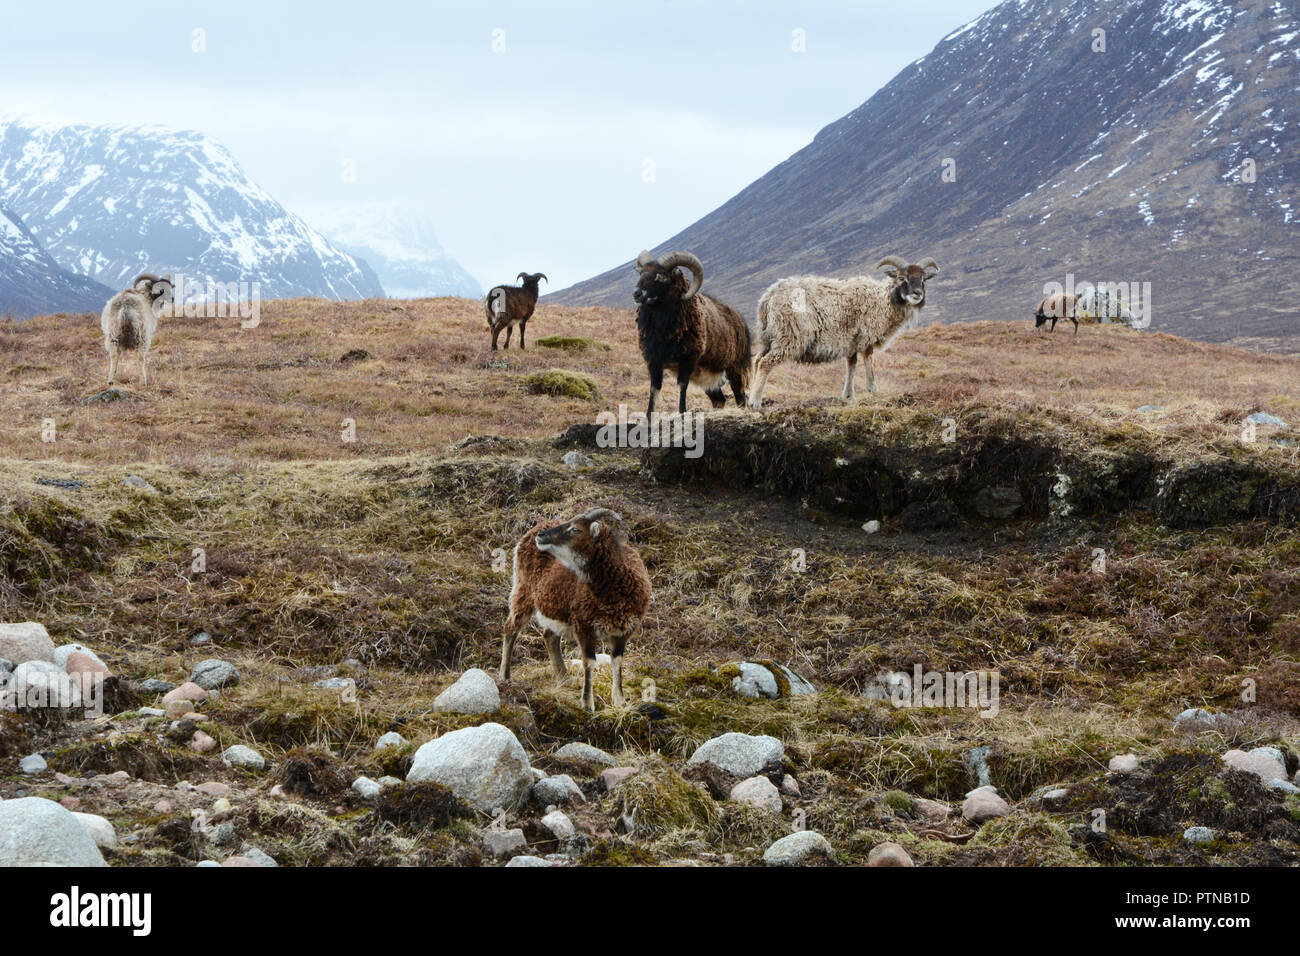 A group of six feral mountain goats in a meadow below a snowy Buachaille Etive Mor, Glen Etive, in the Scottish Highlands, Scotland, United Kingdom. - Stock Image